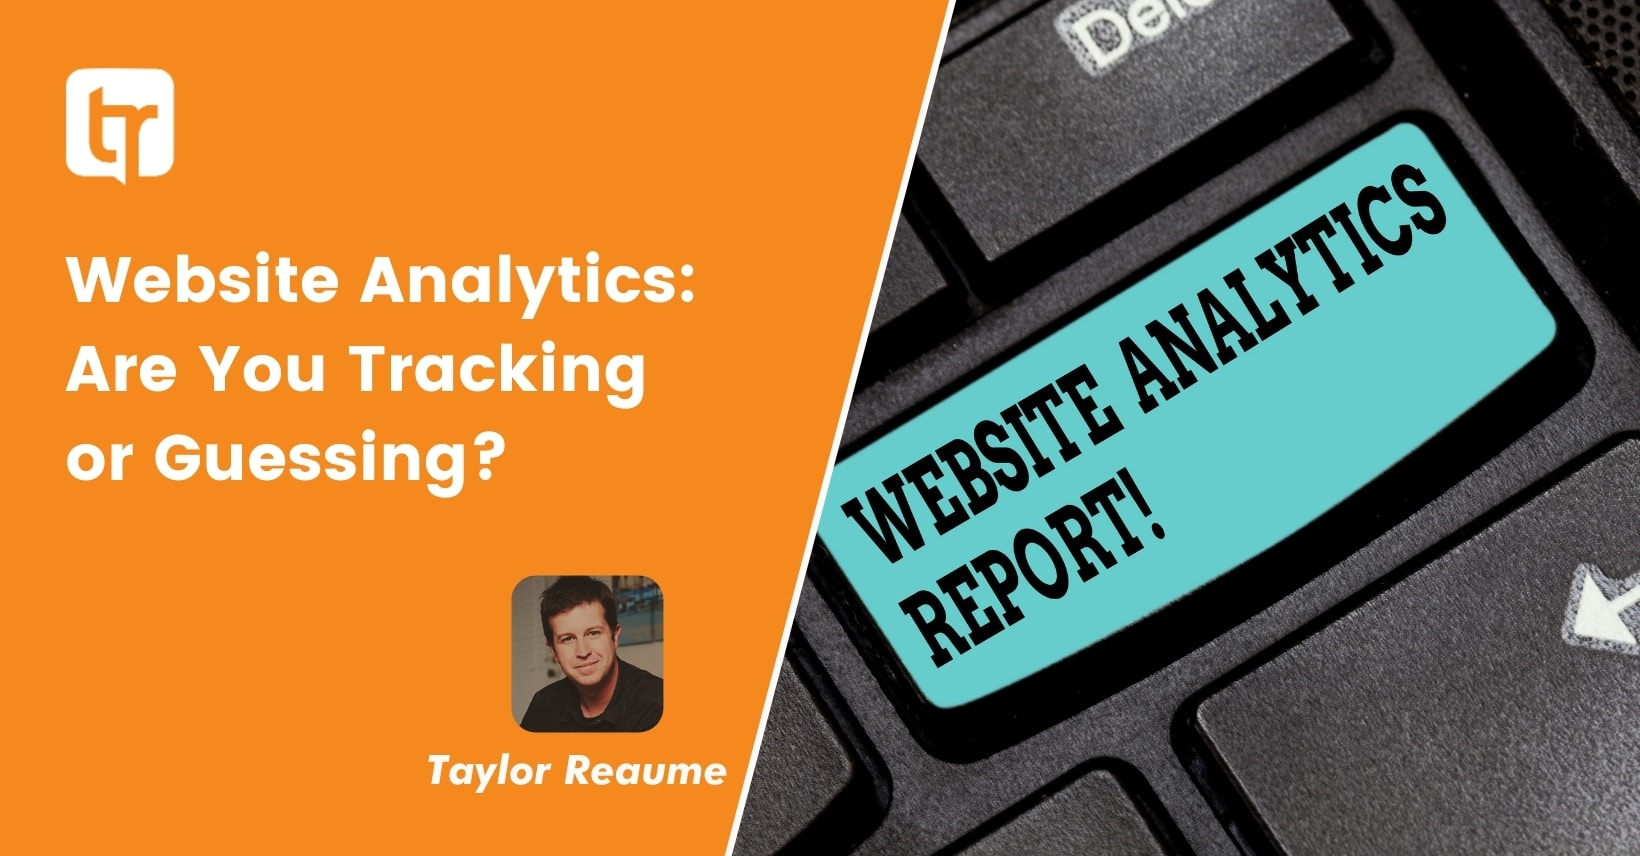 Website Analytics: Are You Tracking or Guessing?